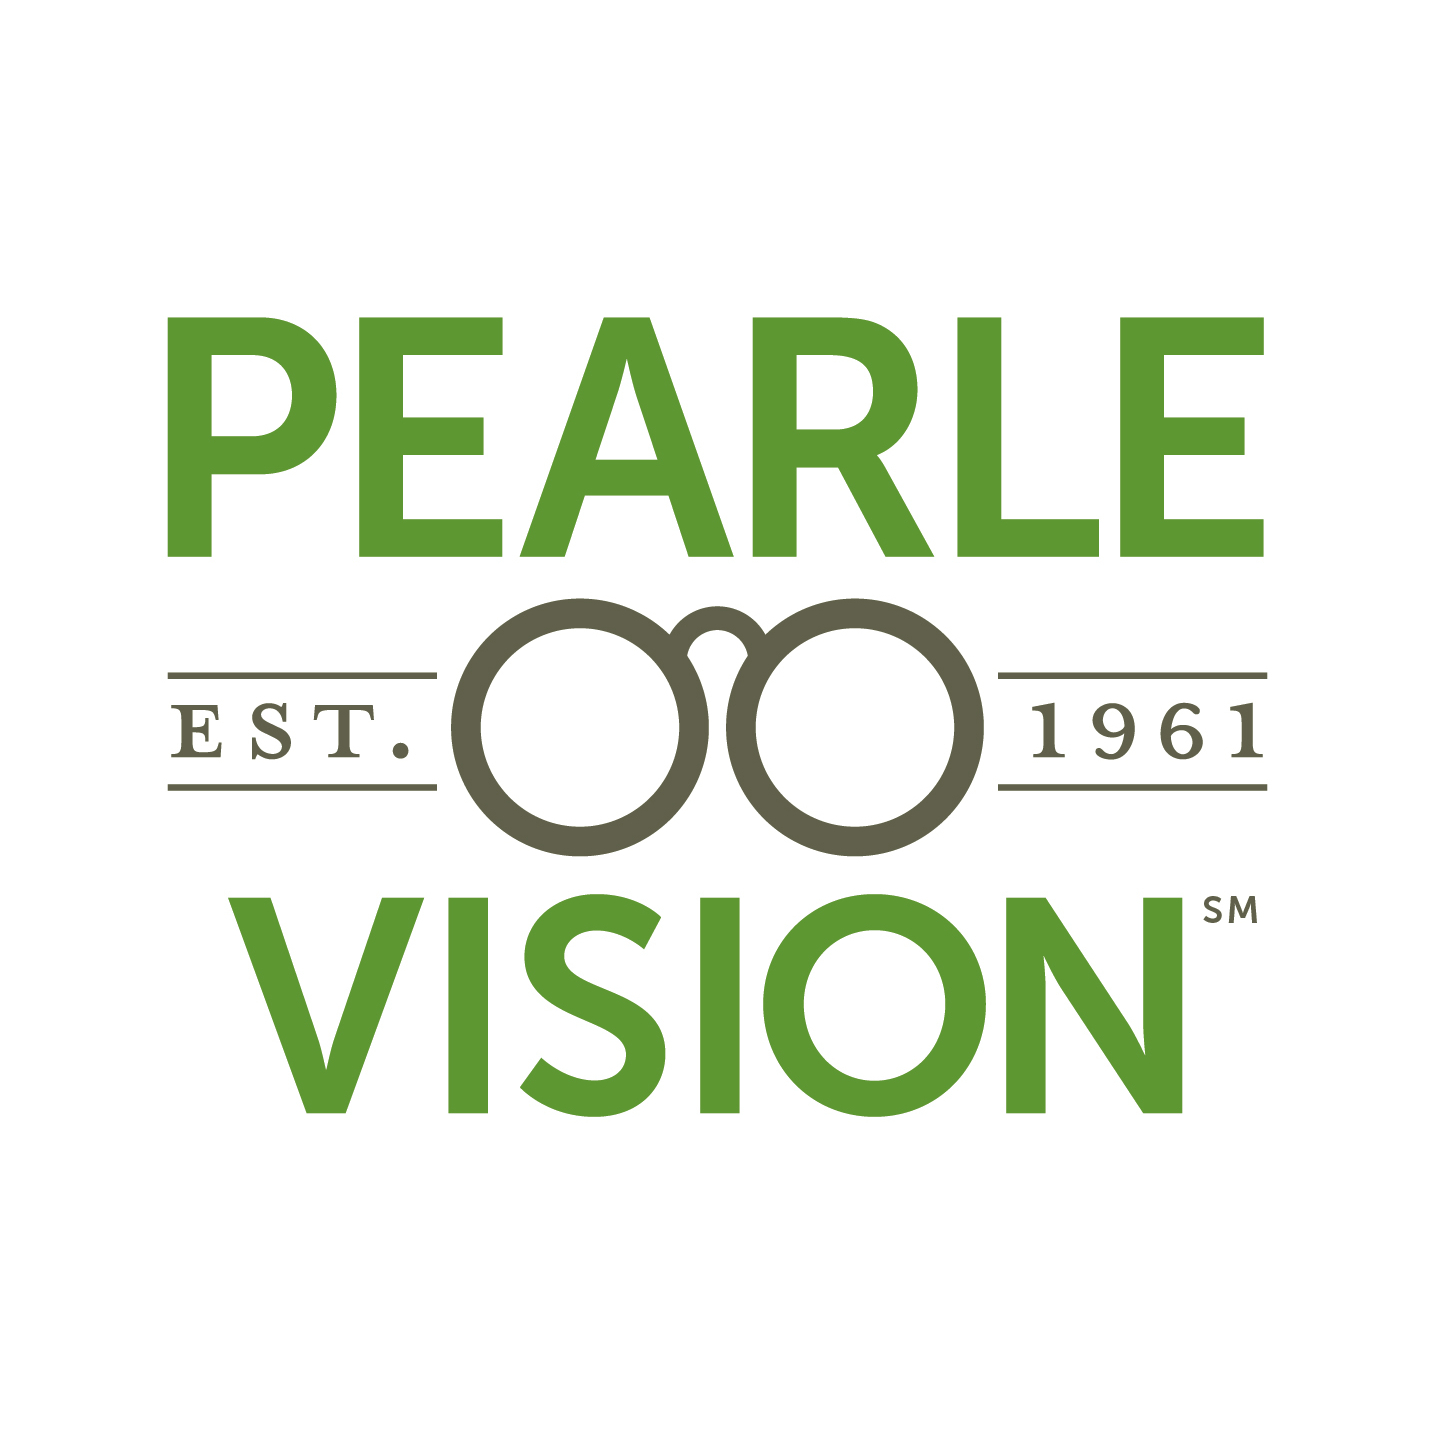 Pearle Vision - Rio Grande, NJ - Optometrists